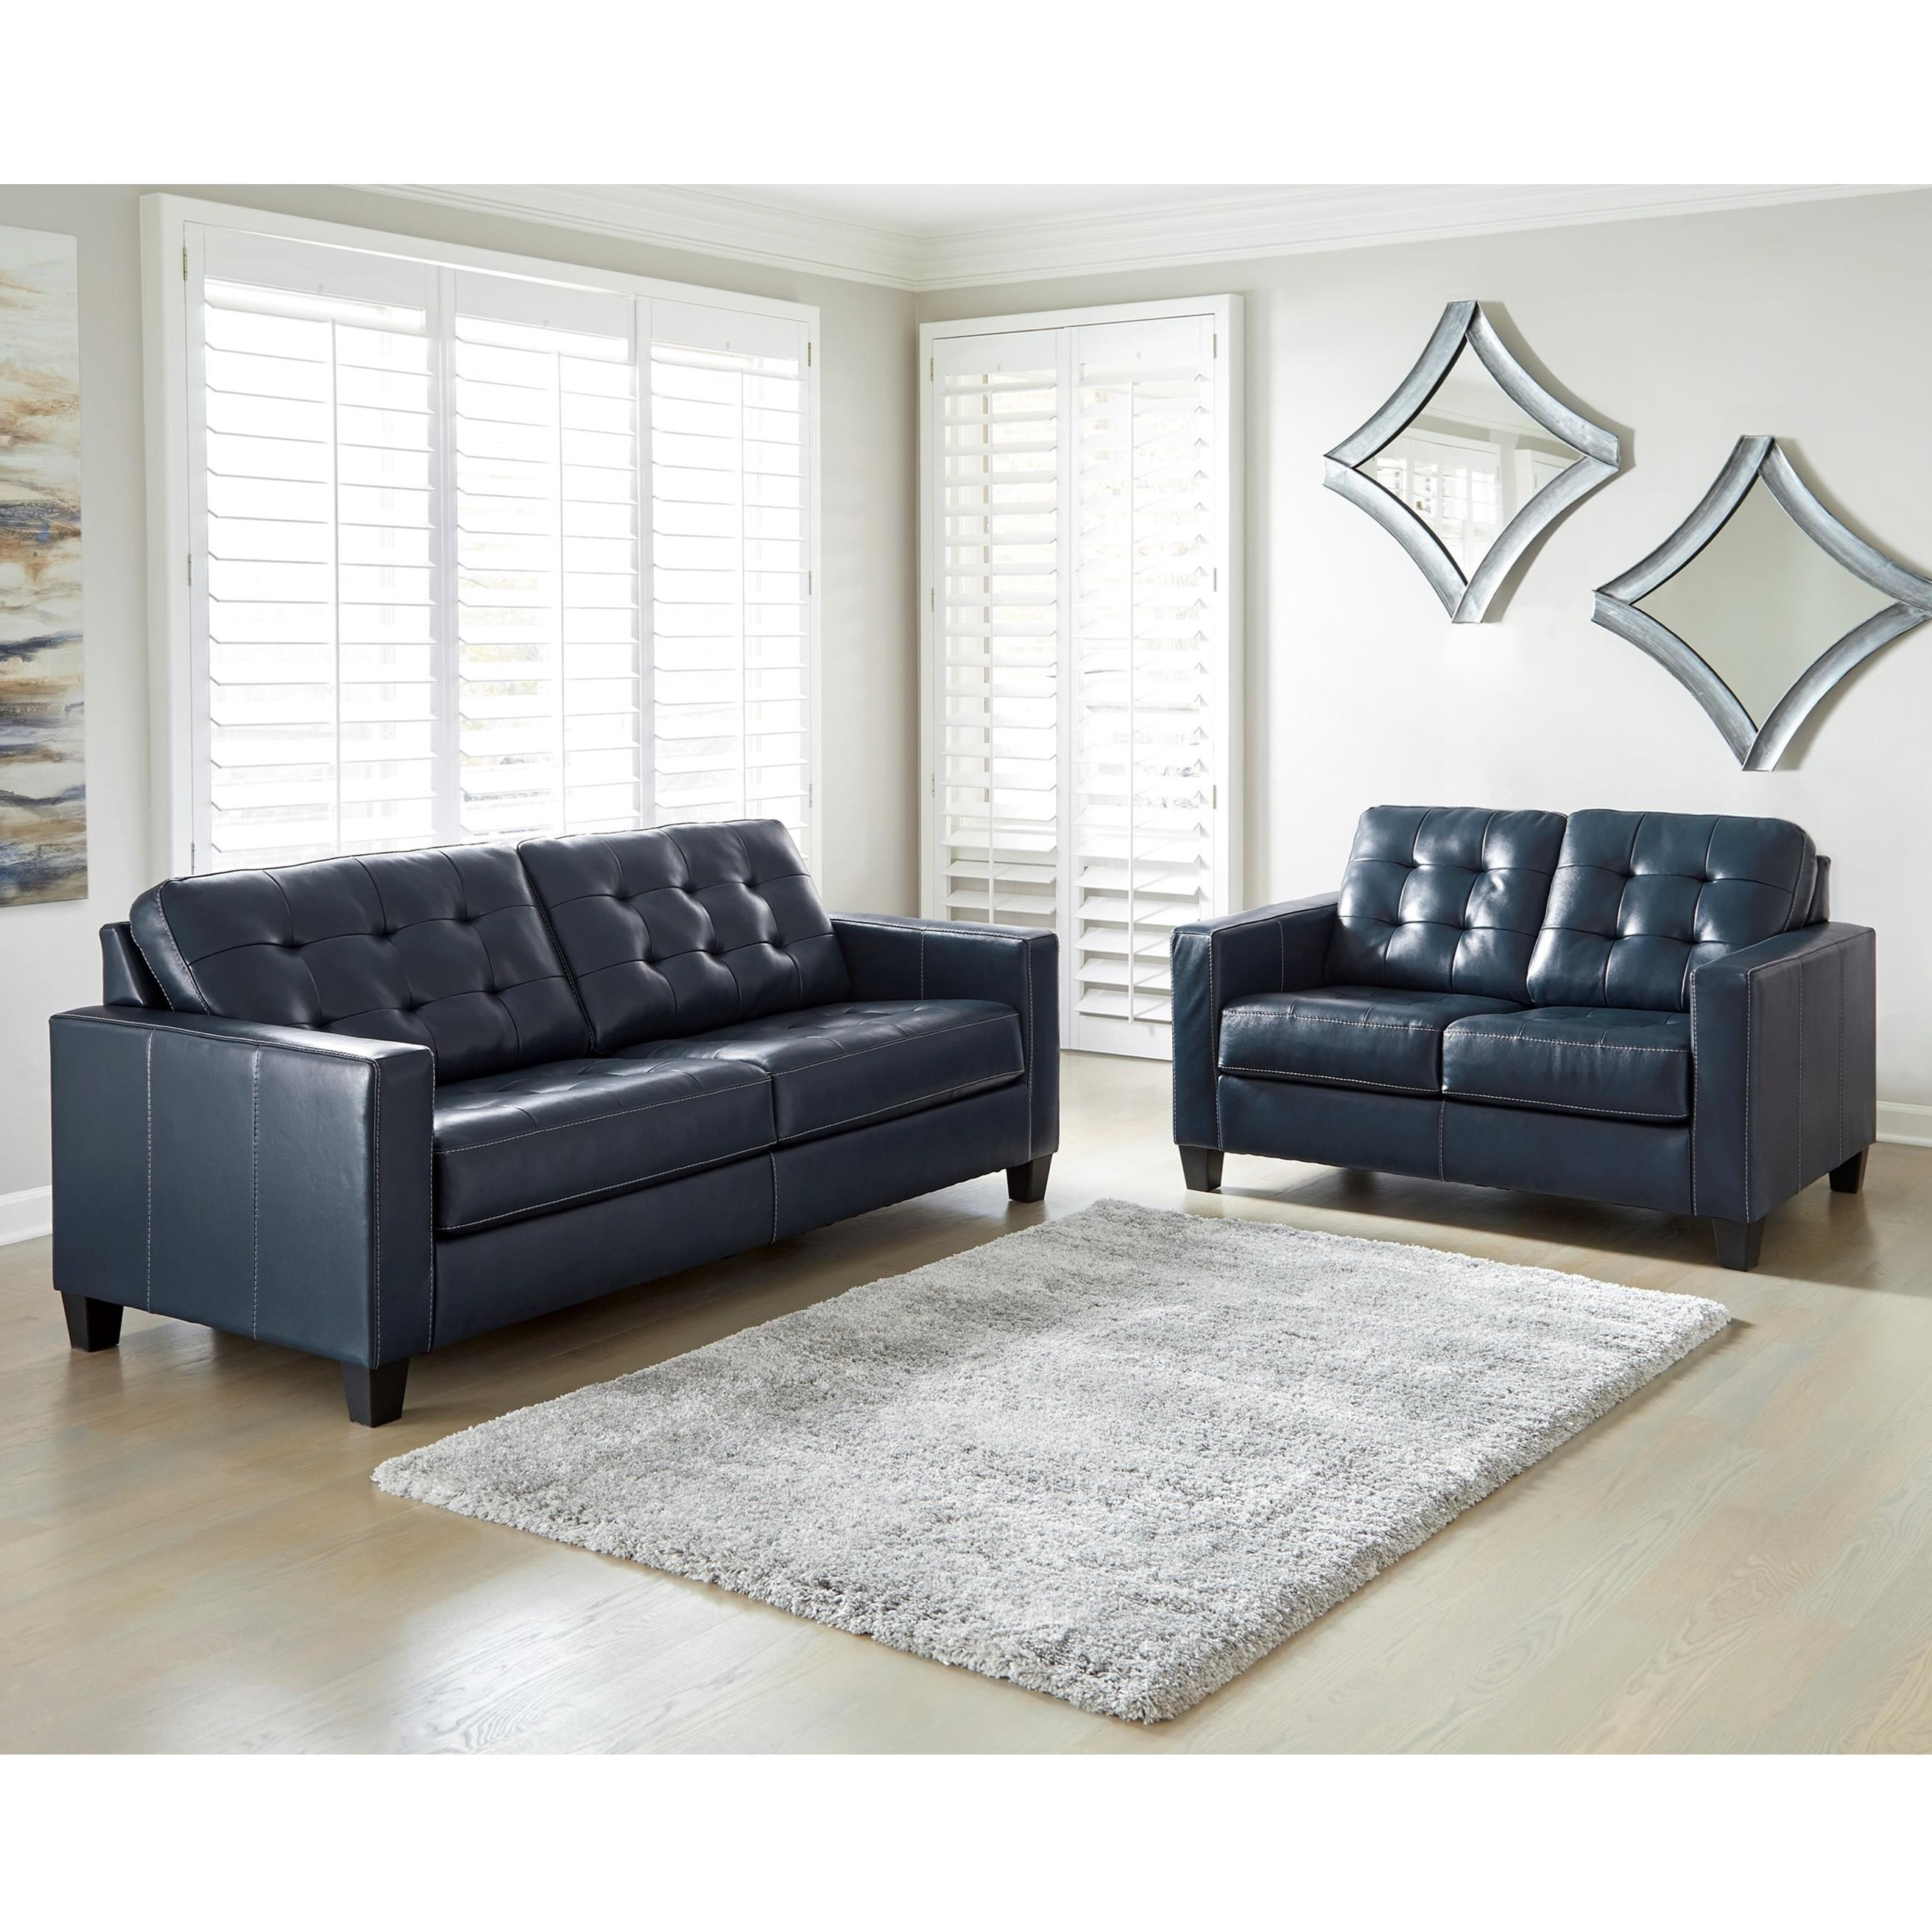 Altonbury Stationary Living Room Group by Signature Design by Ashley at Zak's Warehouse Clearance Center